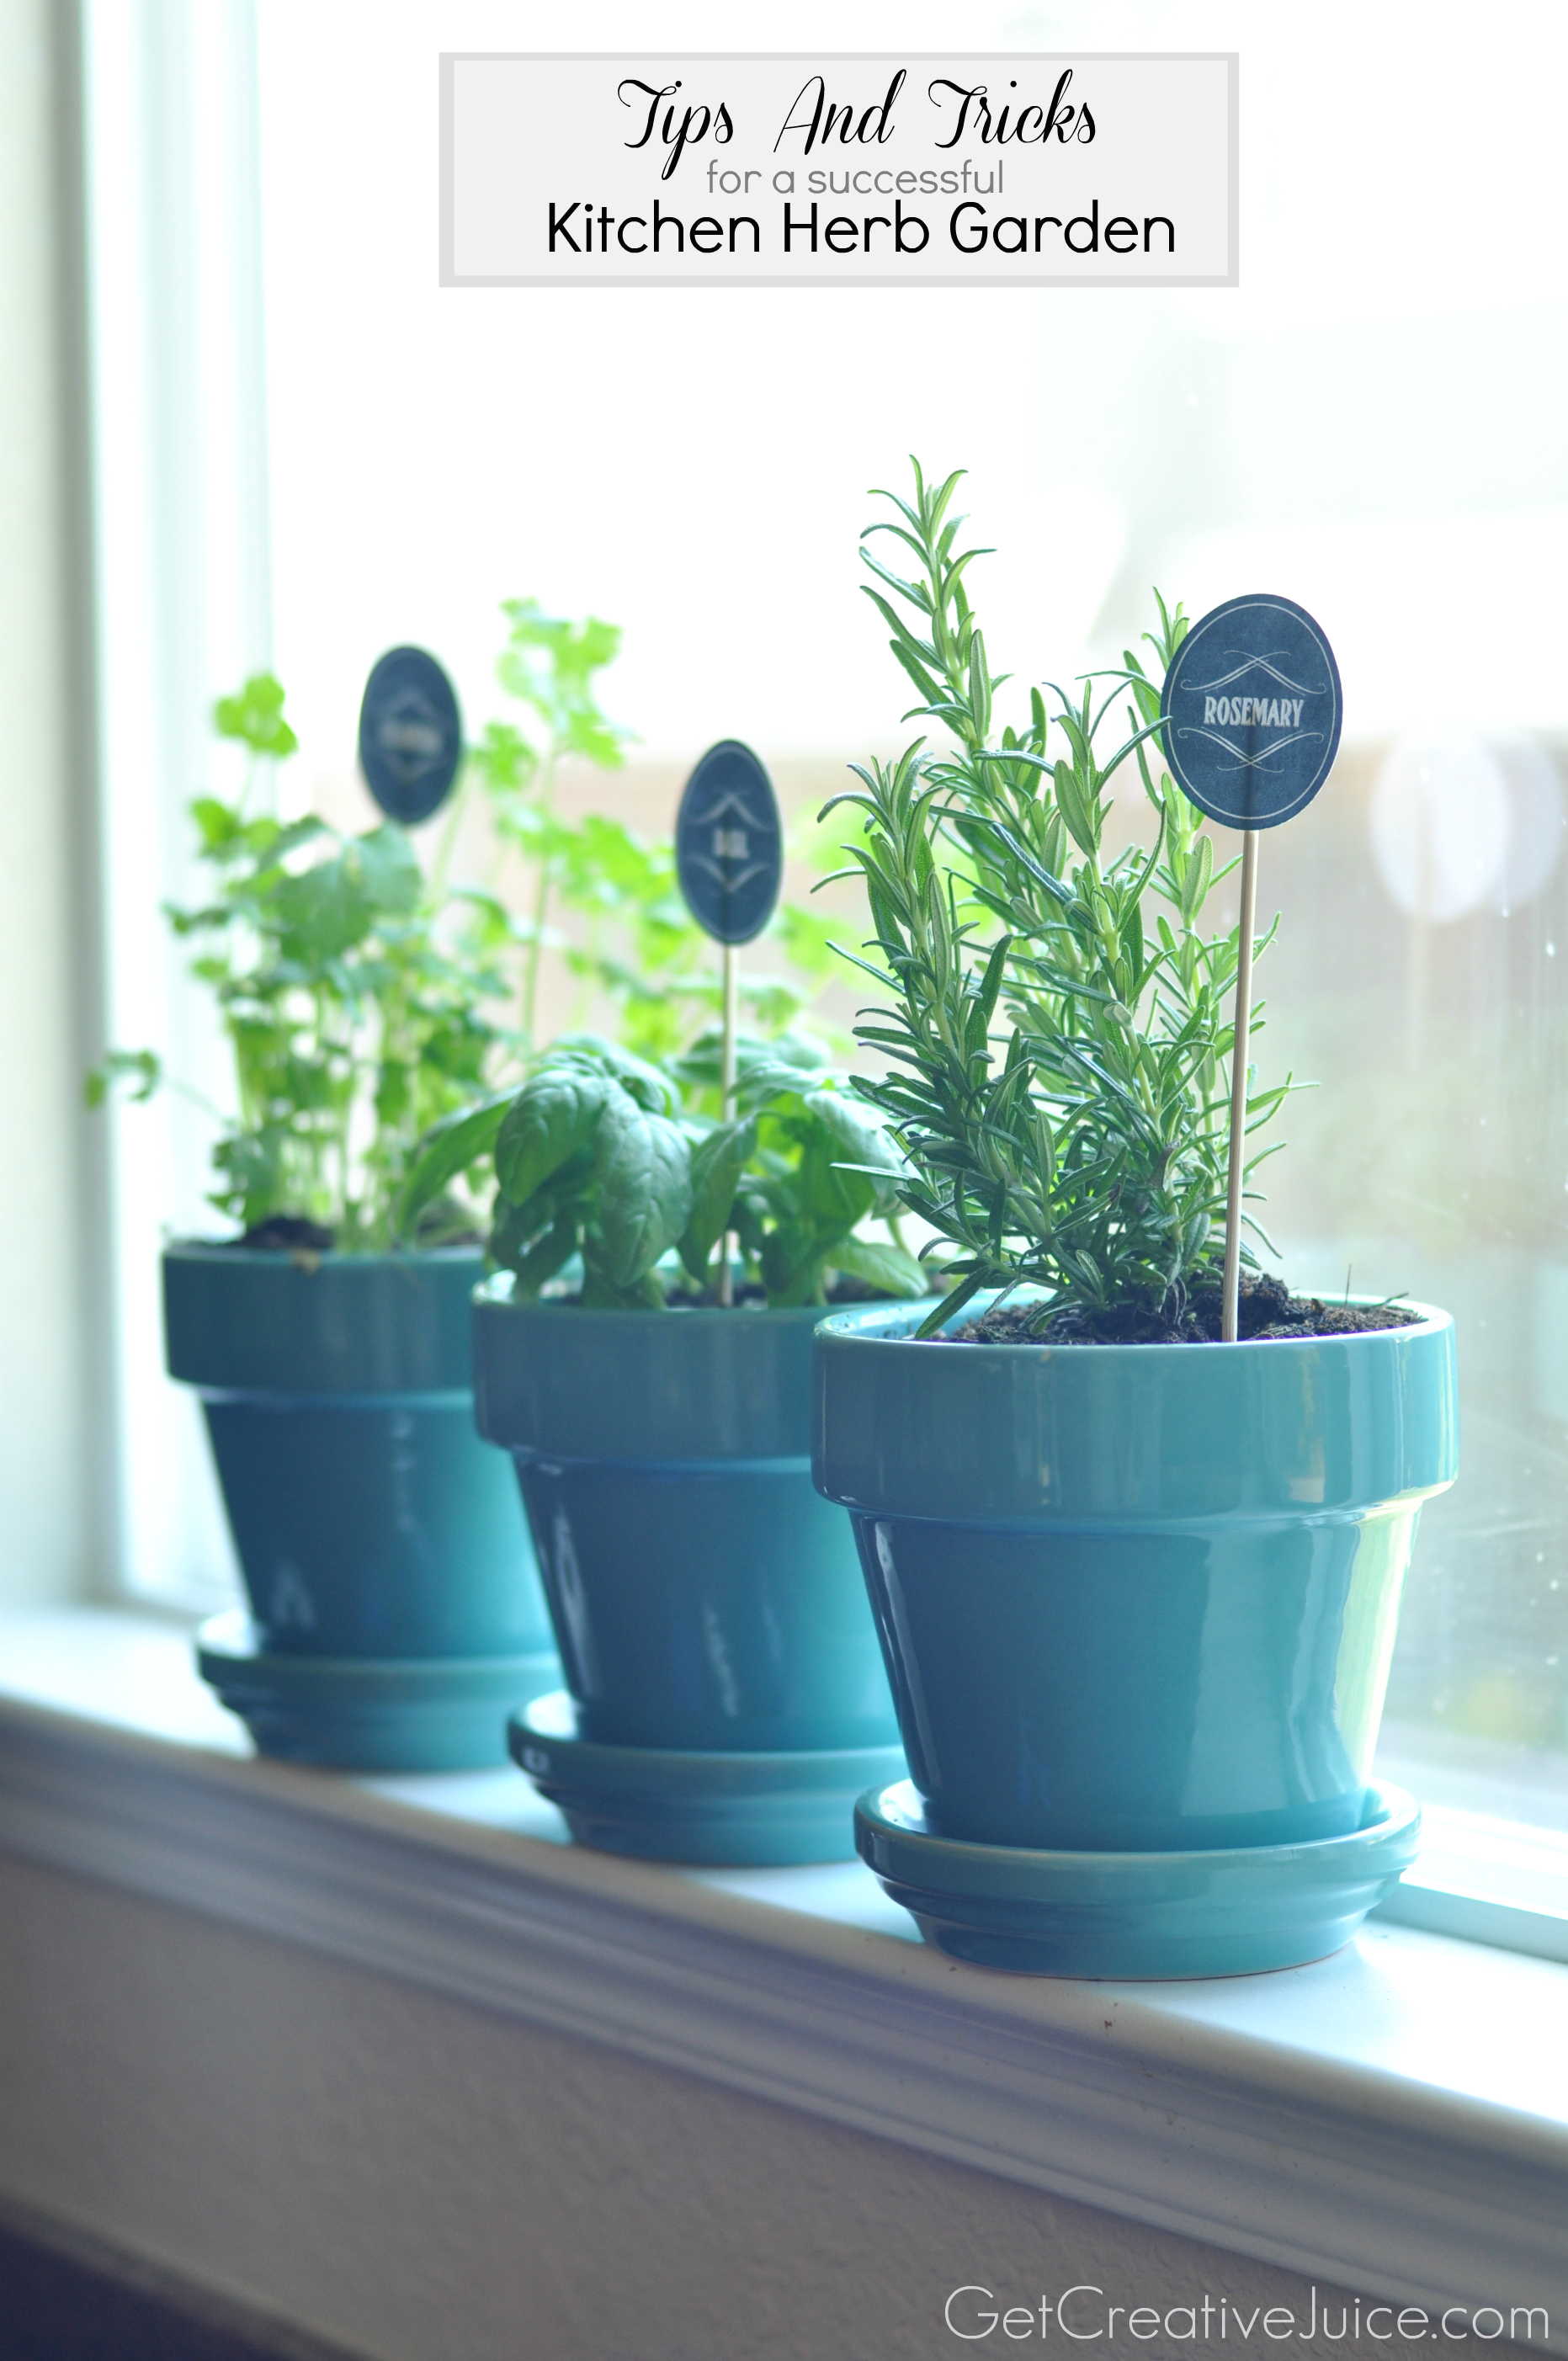 Tips And Tricks To Maintaining An Indoor Kitchen Herb